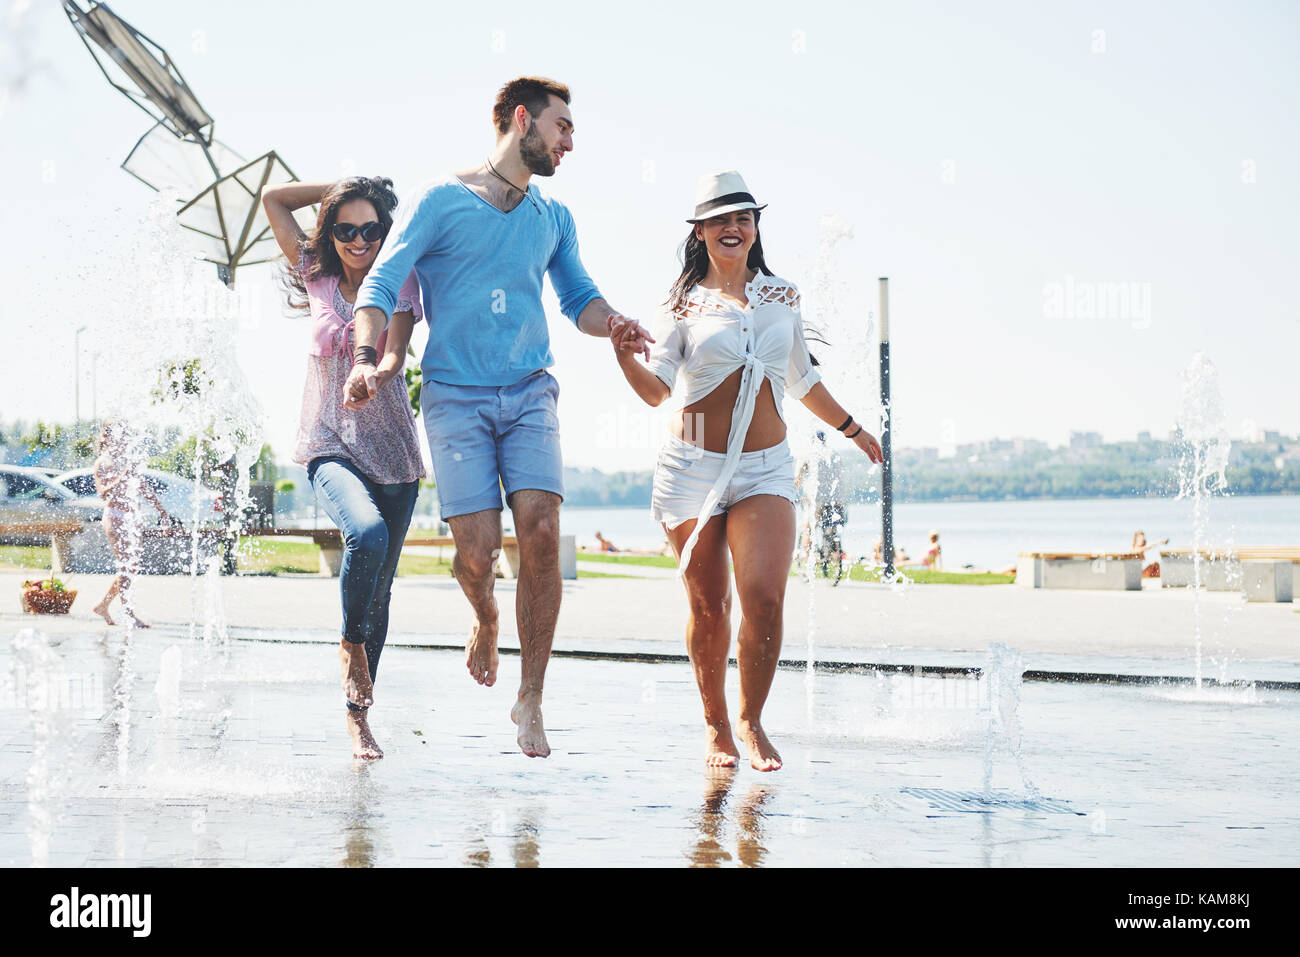 Group of friends having fun next to the public fountain on summer day - Stock Image